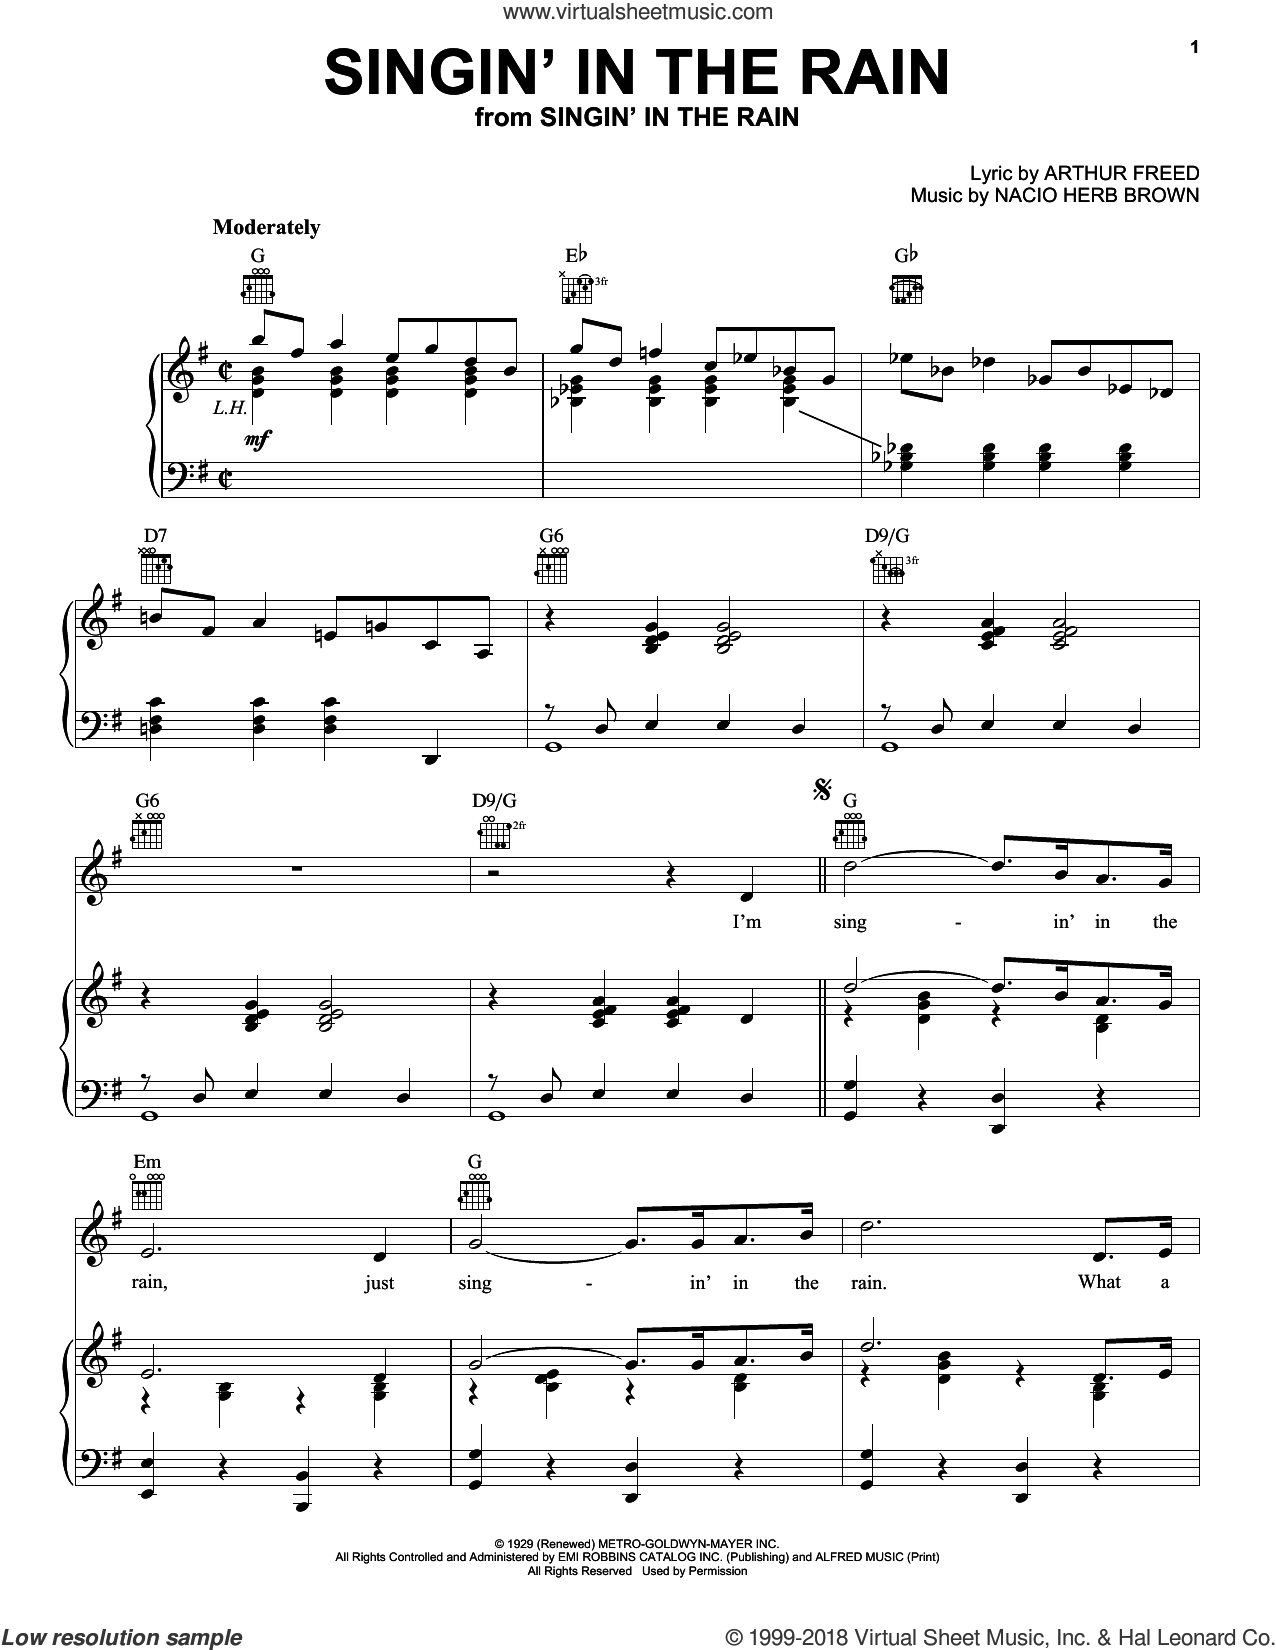 Singin' In The Rain sheet music for voice, piano or guitar by Nacio Herb Brown